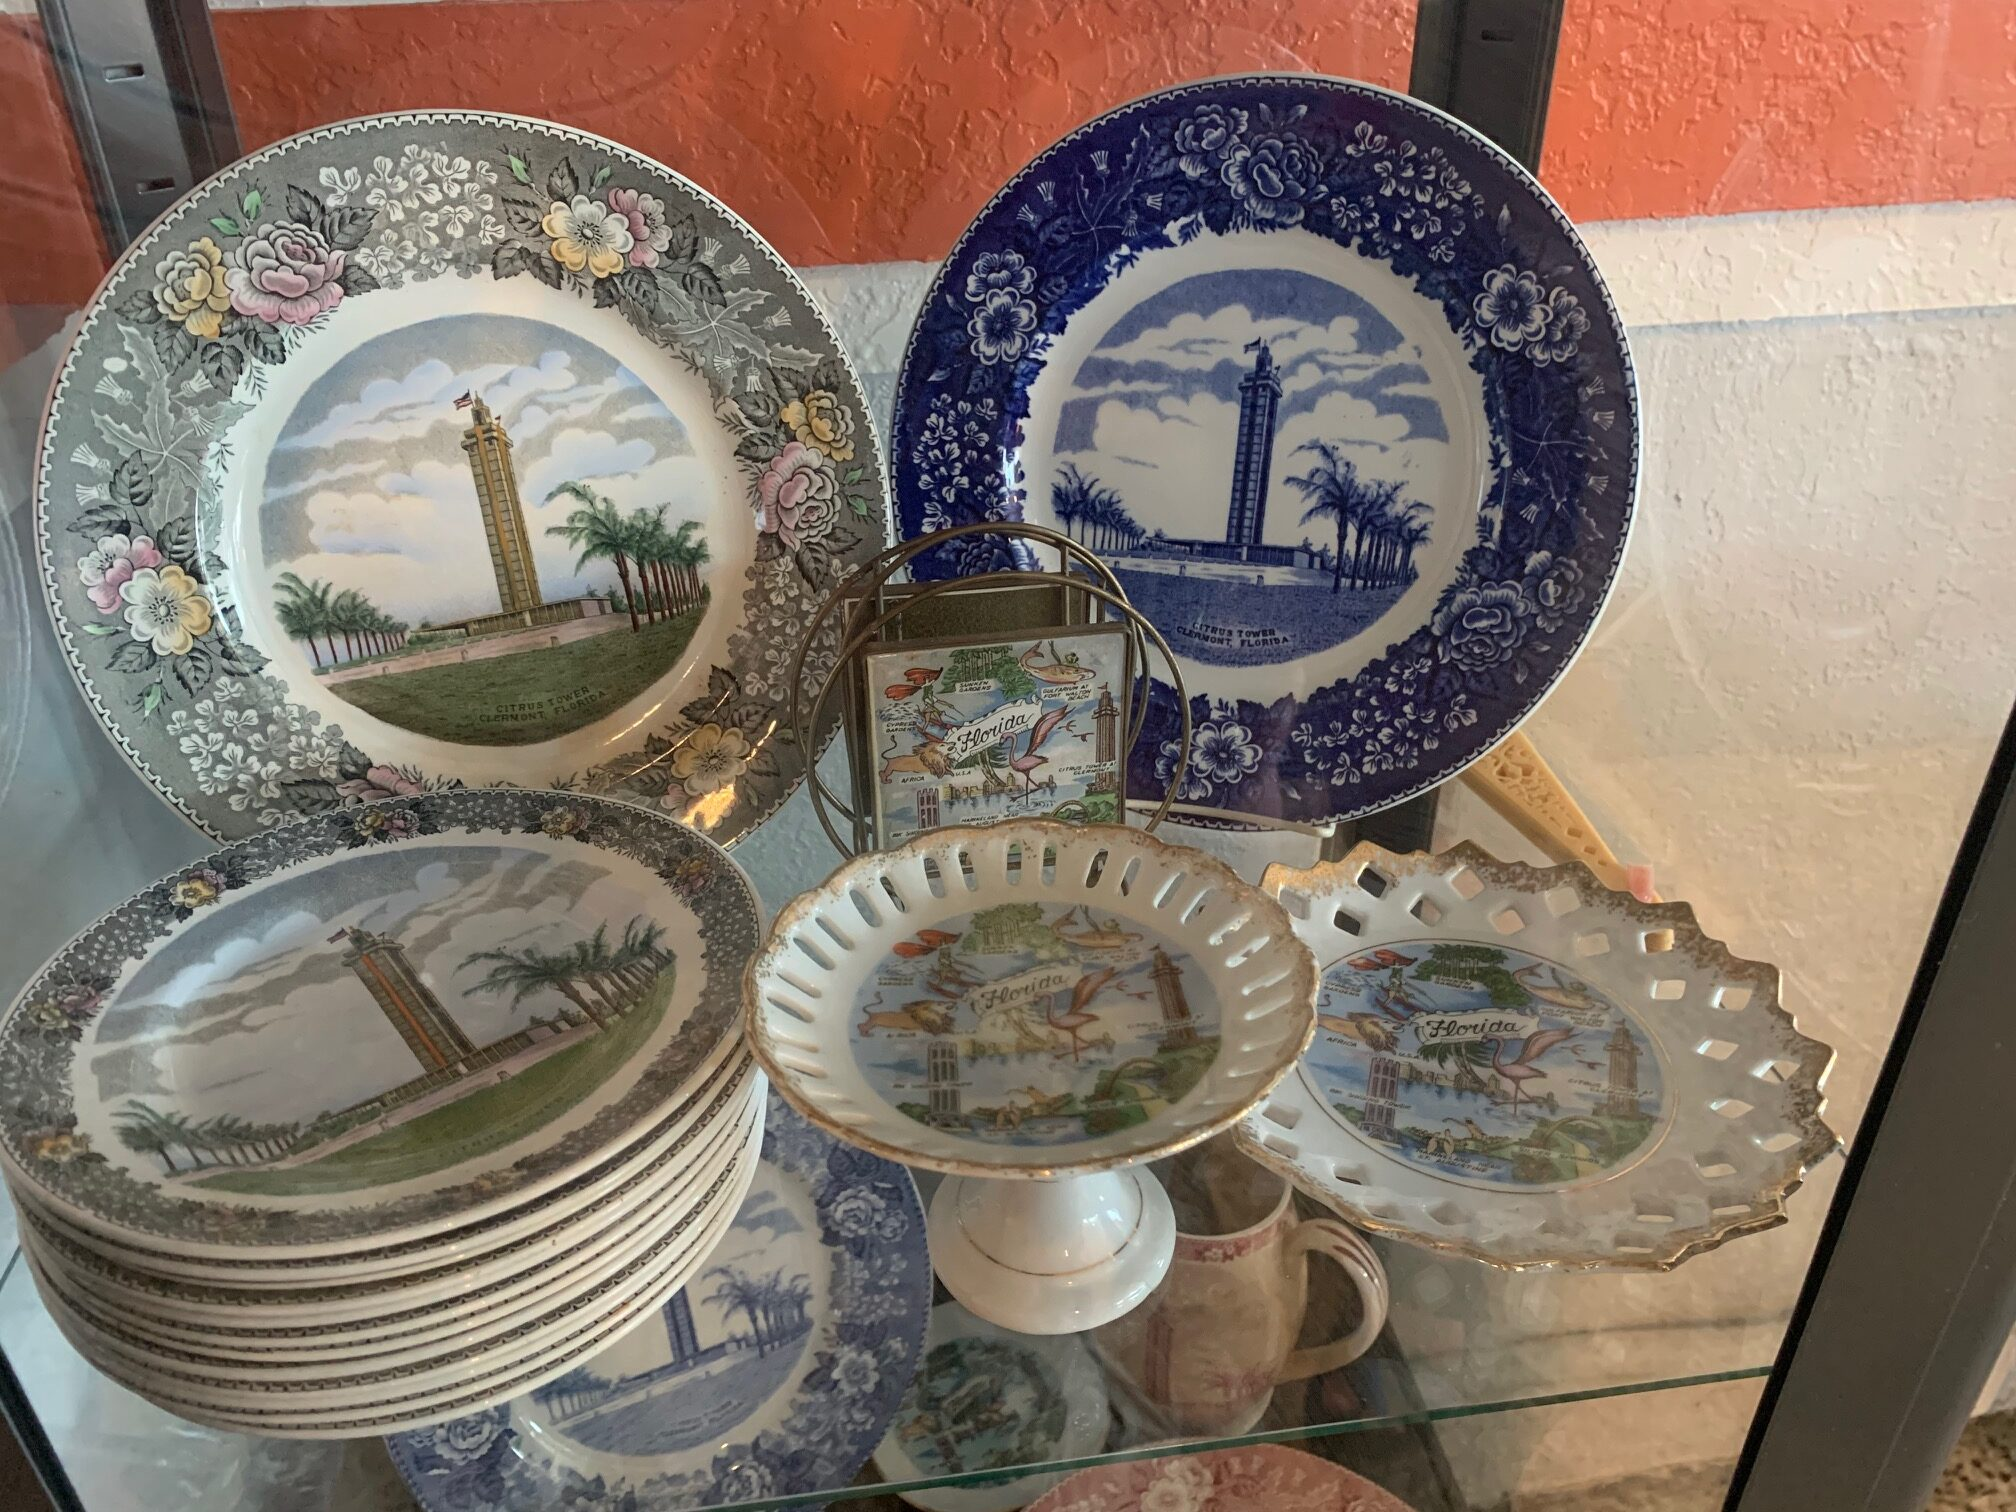 Florida Citrus Tower souvenir plates